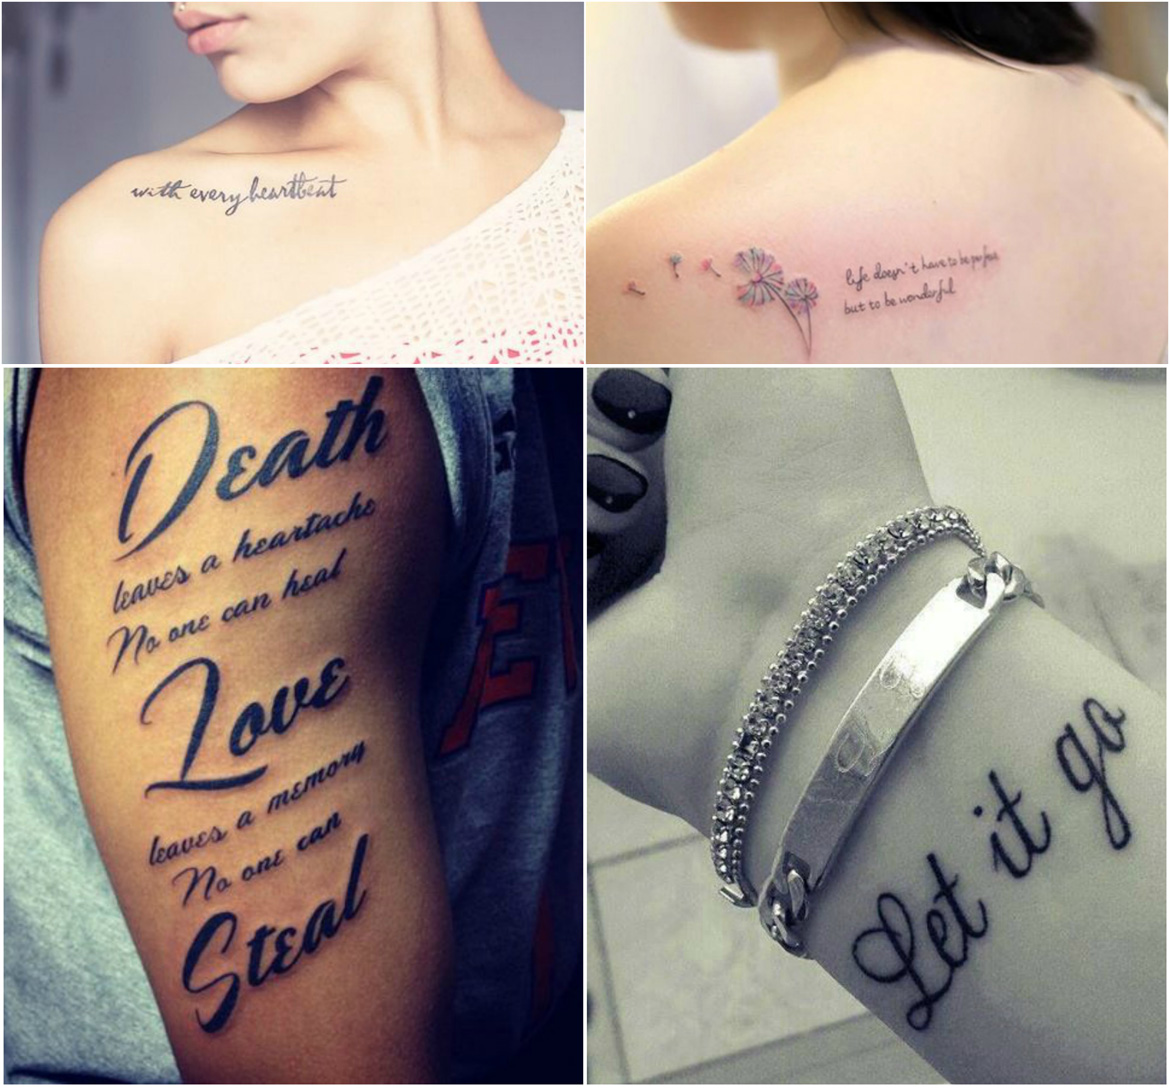 phrase used too often tattoos